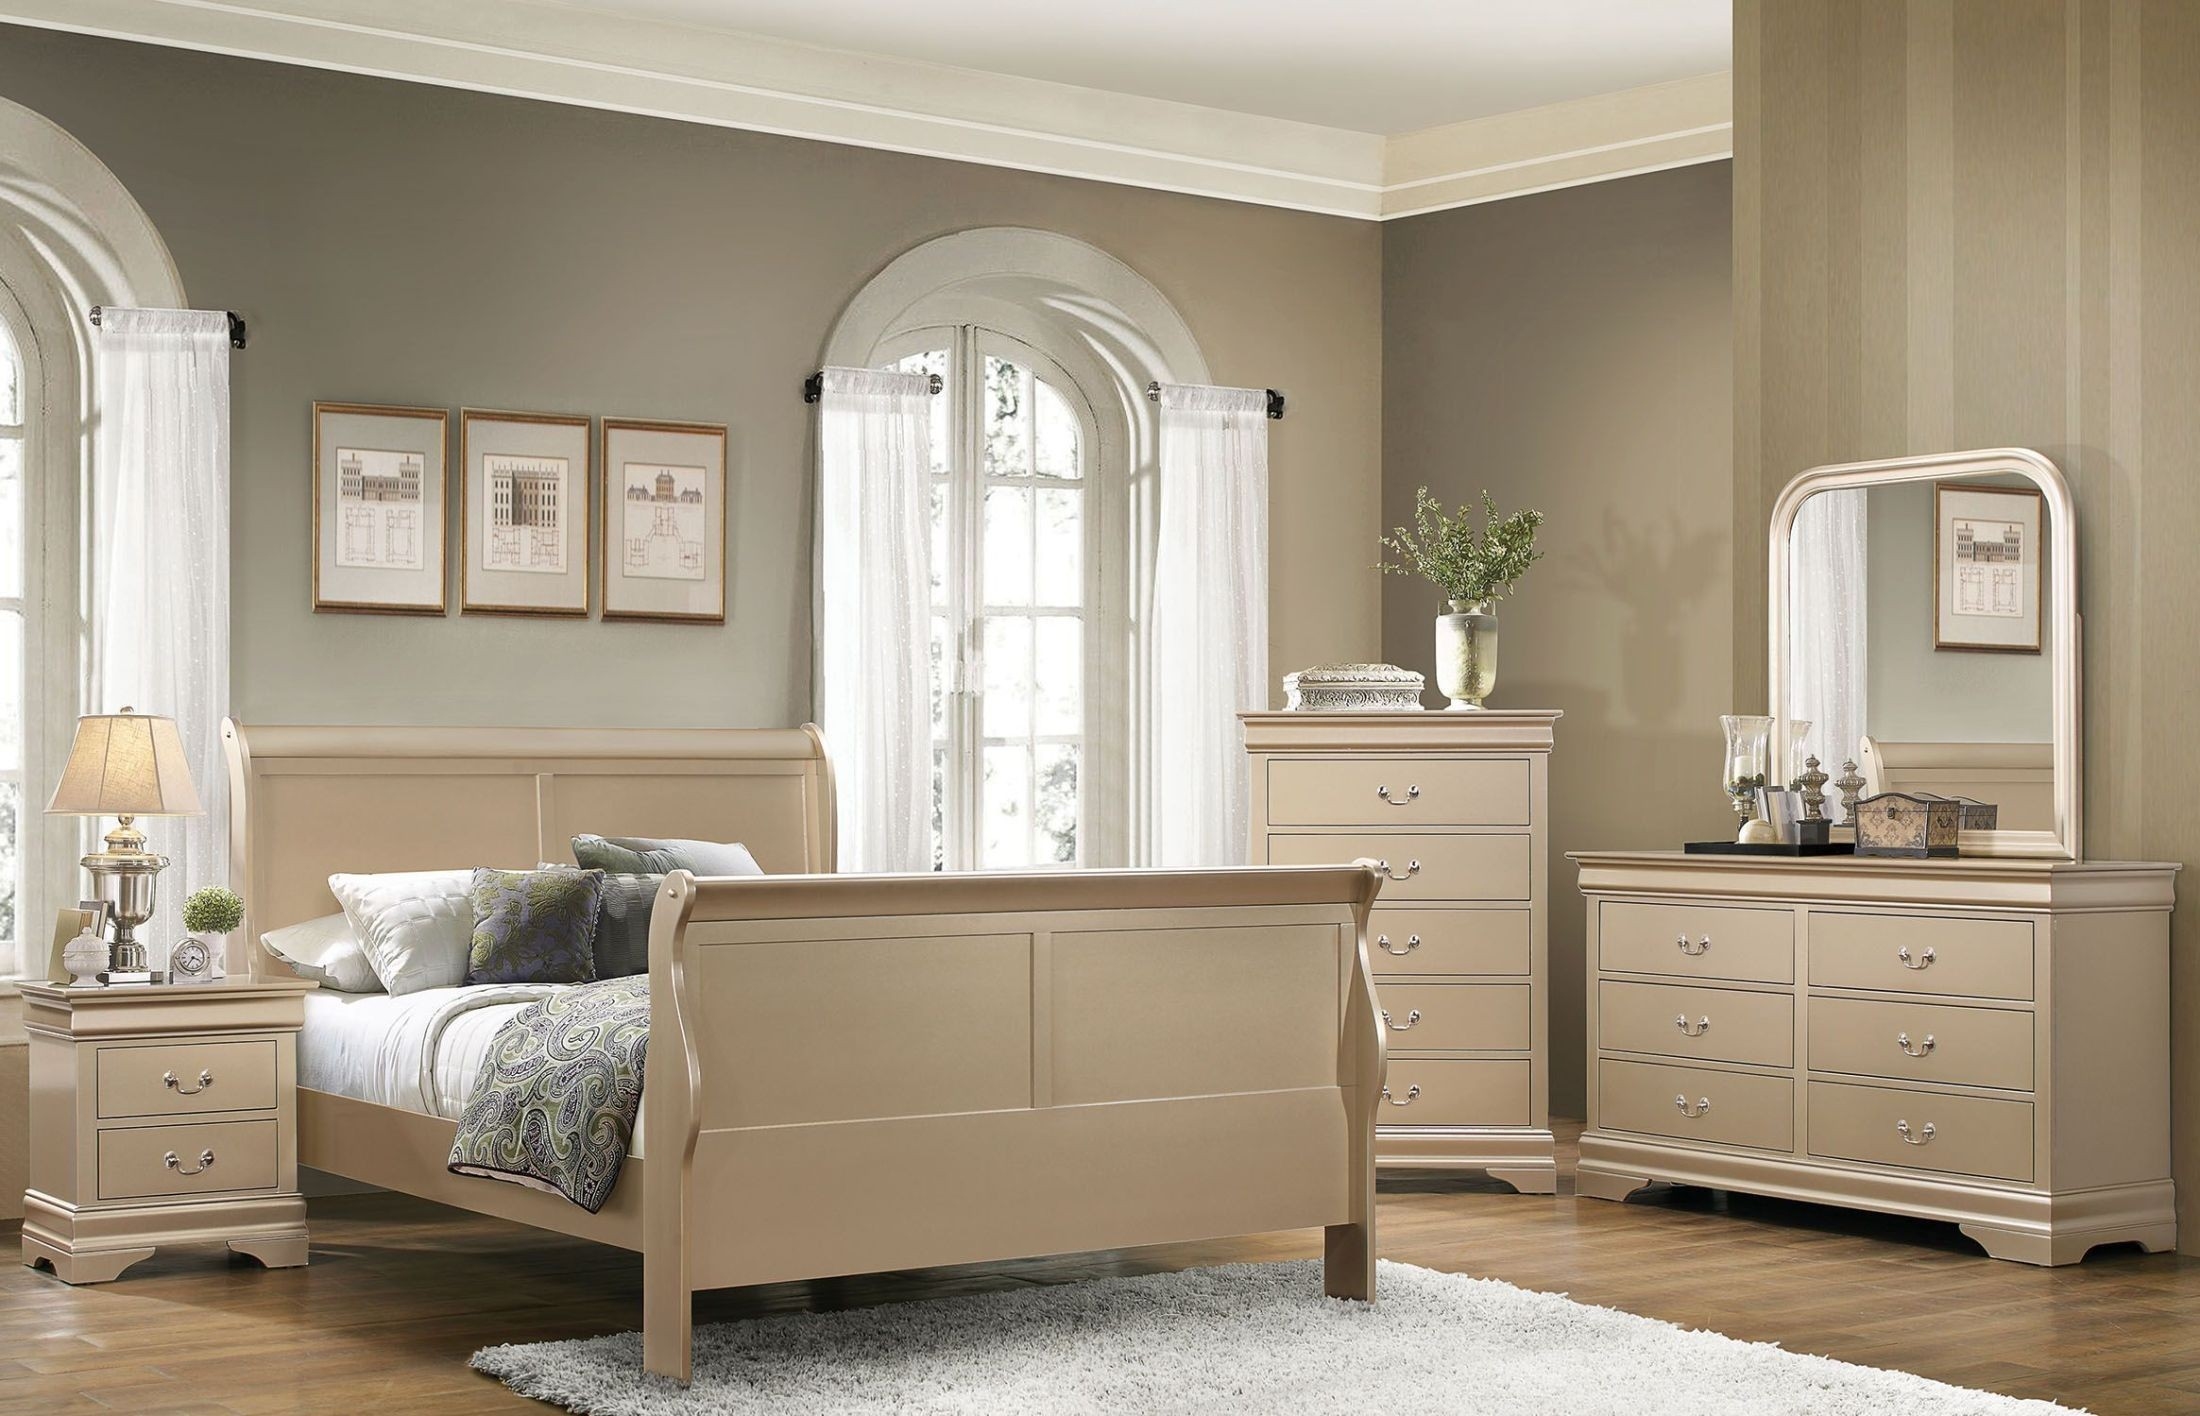 7PC Complete Champagne Bedroom Suite Package Deal (AVAILABLE IN ALL SIZES)